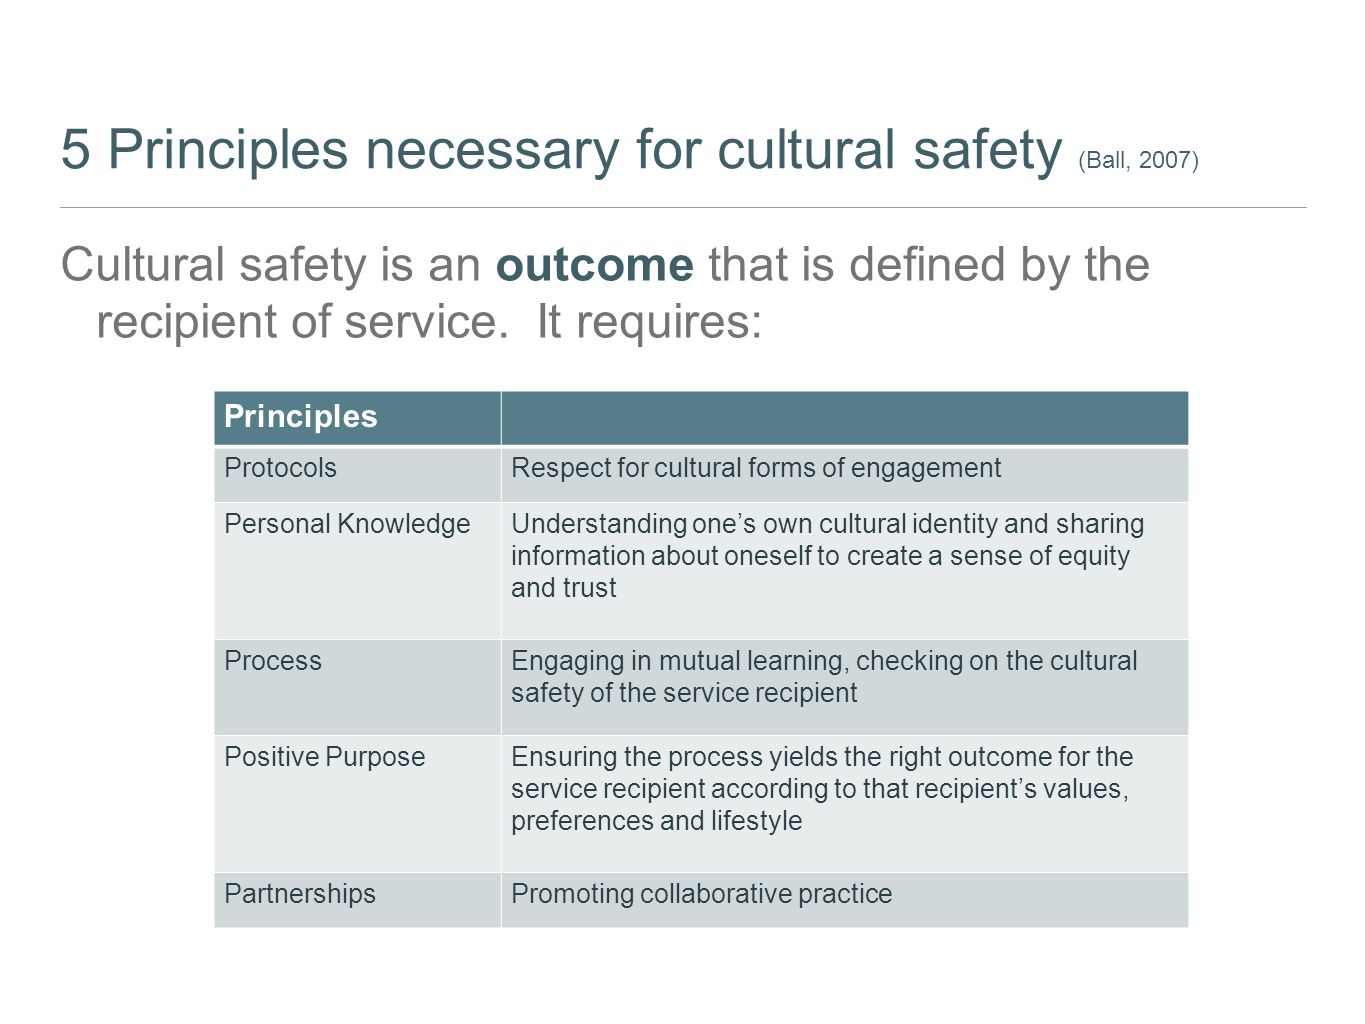 5 Principles necessary for cultural safety (Ball, 2007)